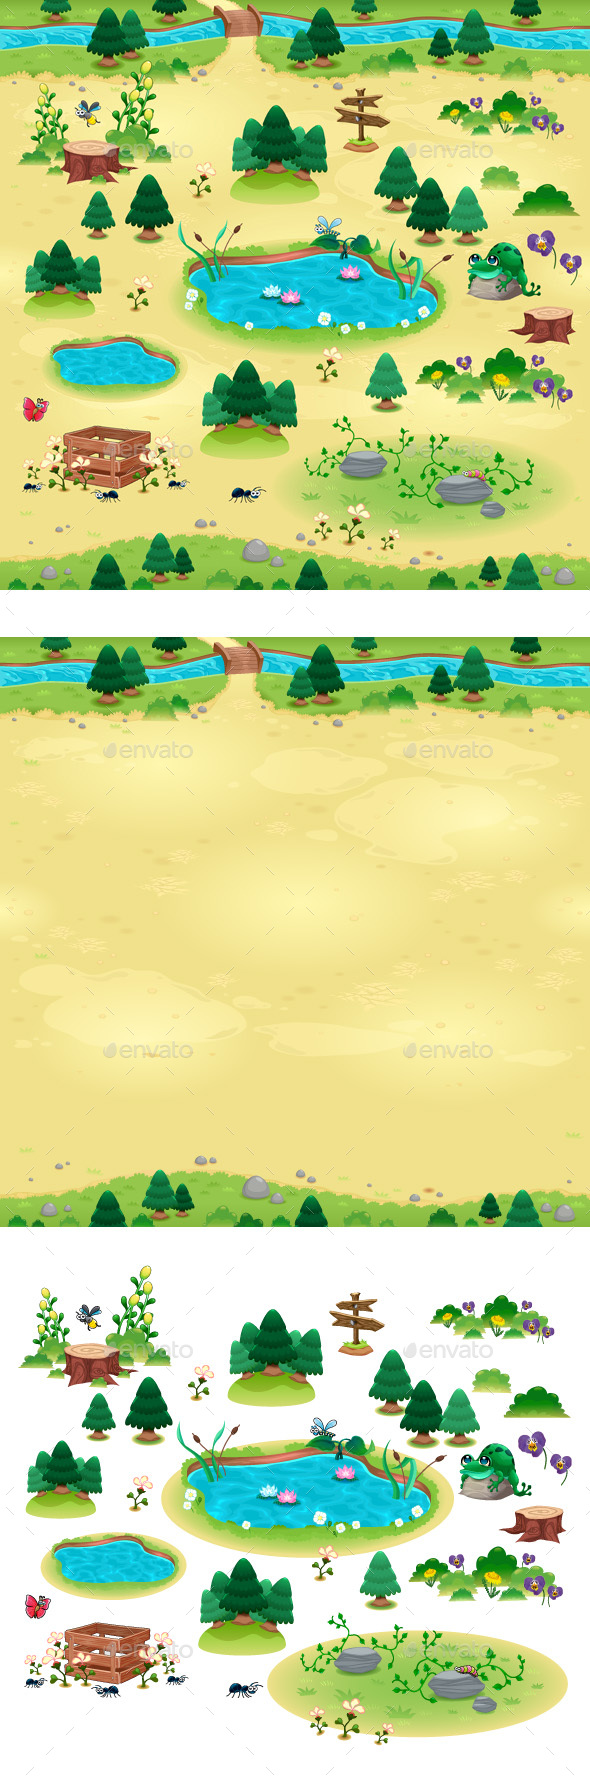 Natural Items for Games and App - Miscellaneous Game Assets